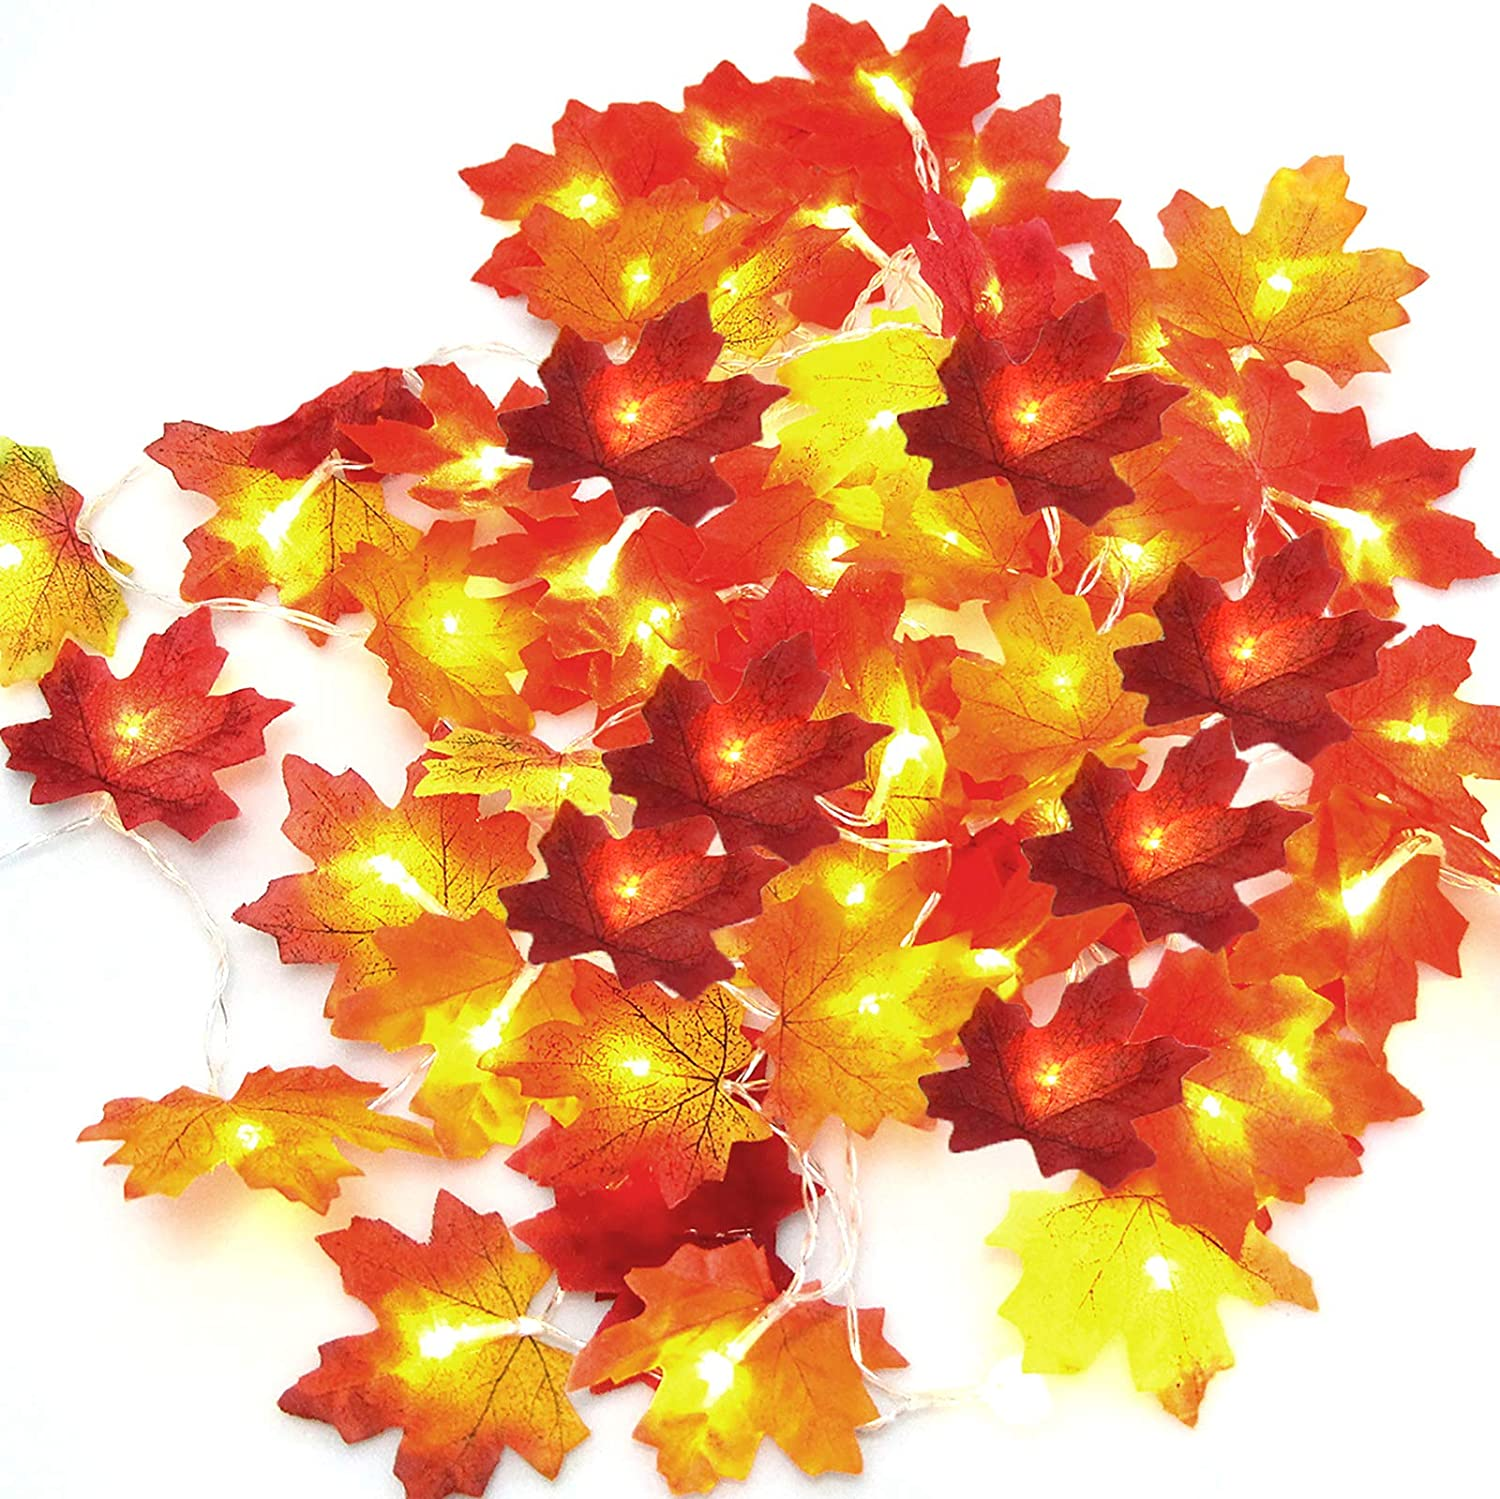 LOCOLO 2 Pieces Thanksgiving Decorations Lighted Fall Garland, 20 LED Red Fall Lights (9.8Ft), 30 LED Multicolor Maple Leaf String Lights (9.8Ft), Holiday Decorations String Lights